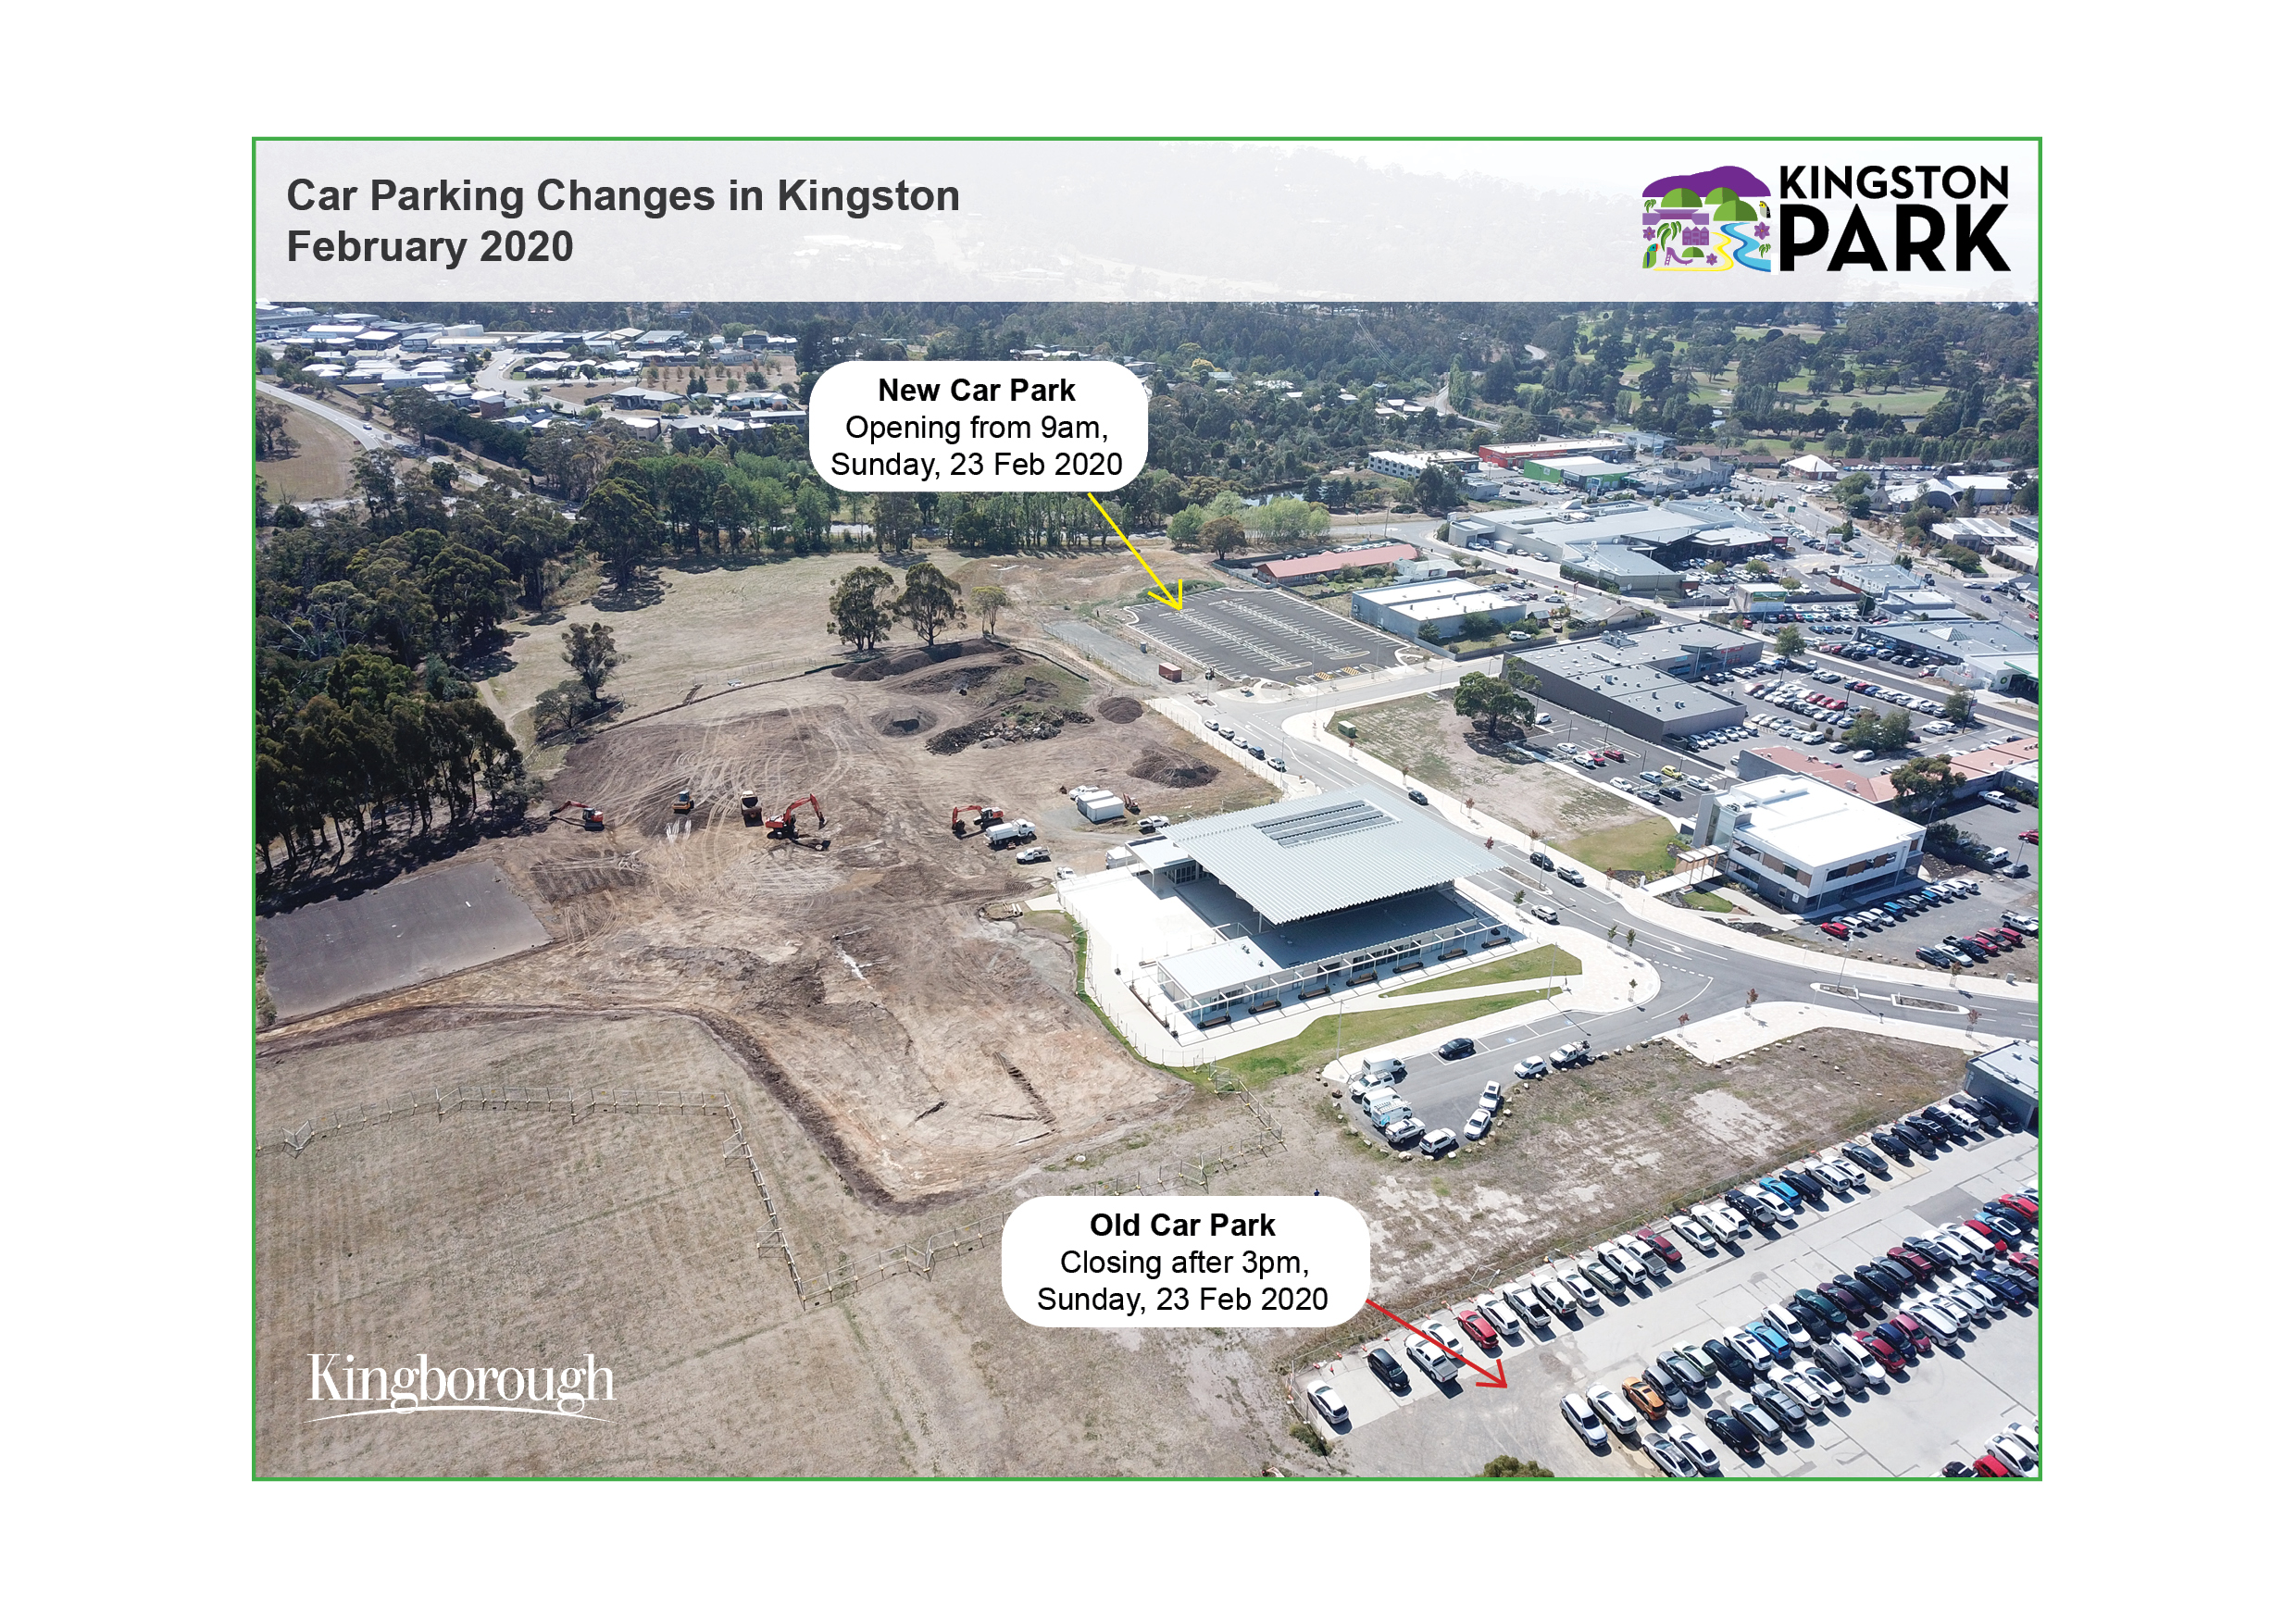 Aerial photo of Kingston Park